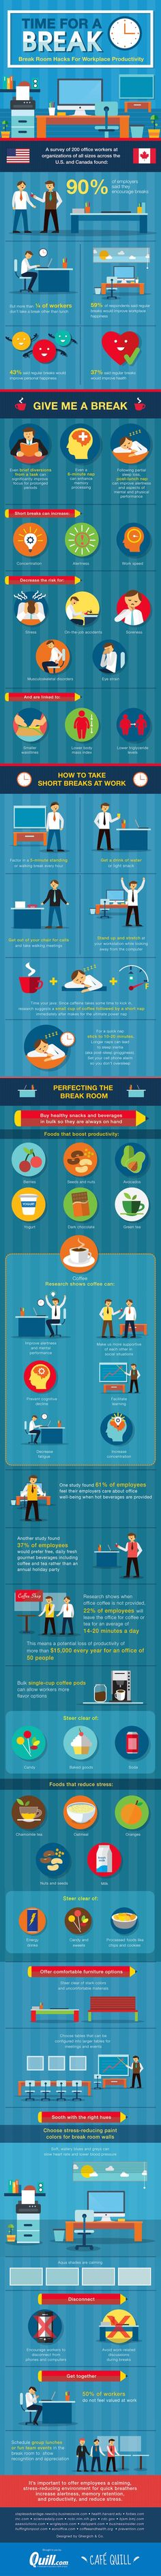 Want to Boost Office Productivity? Start With These Break Room Hacks [Infographic]